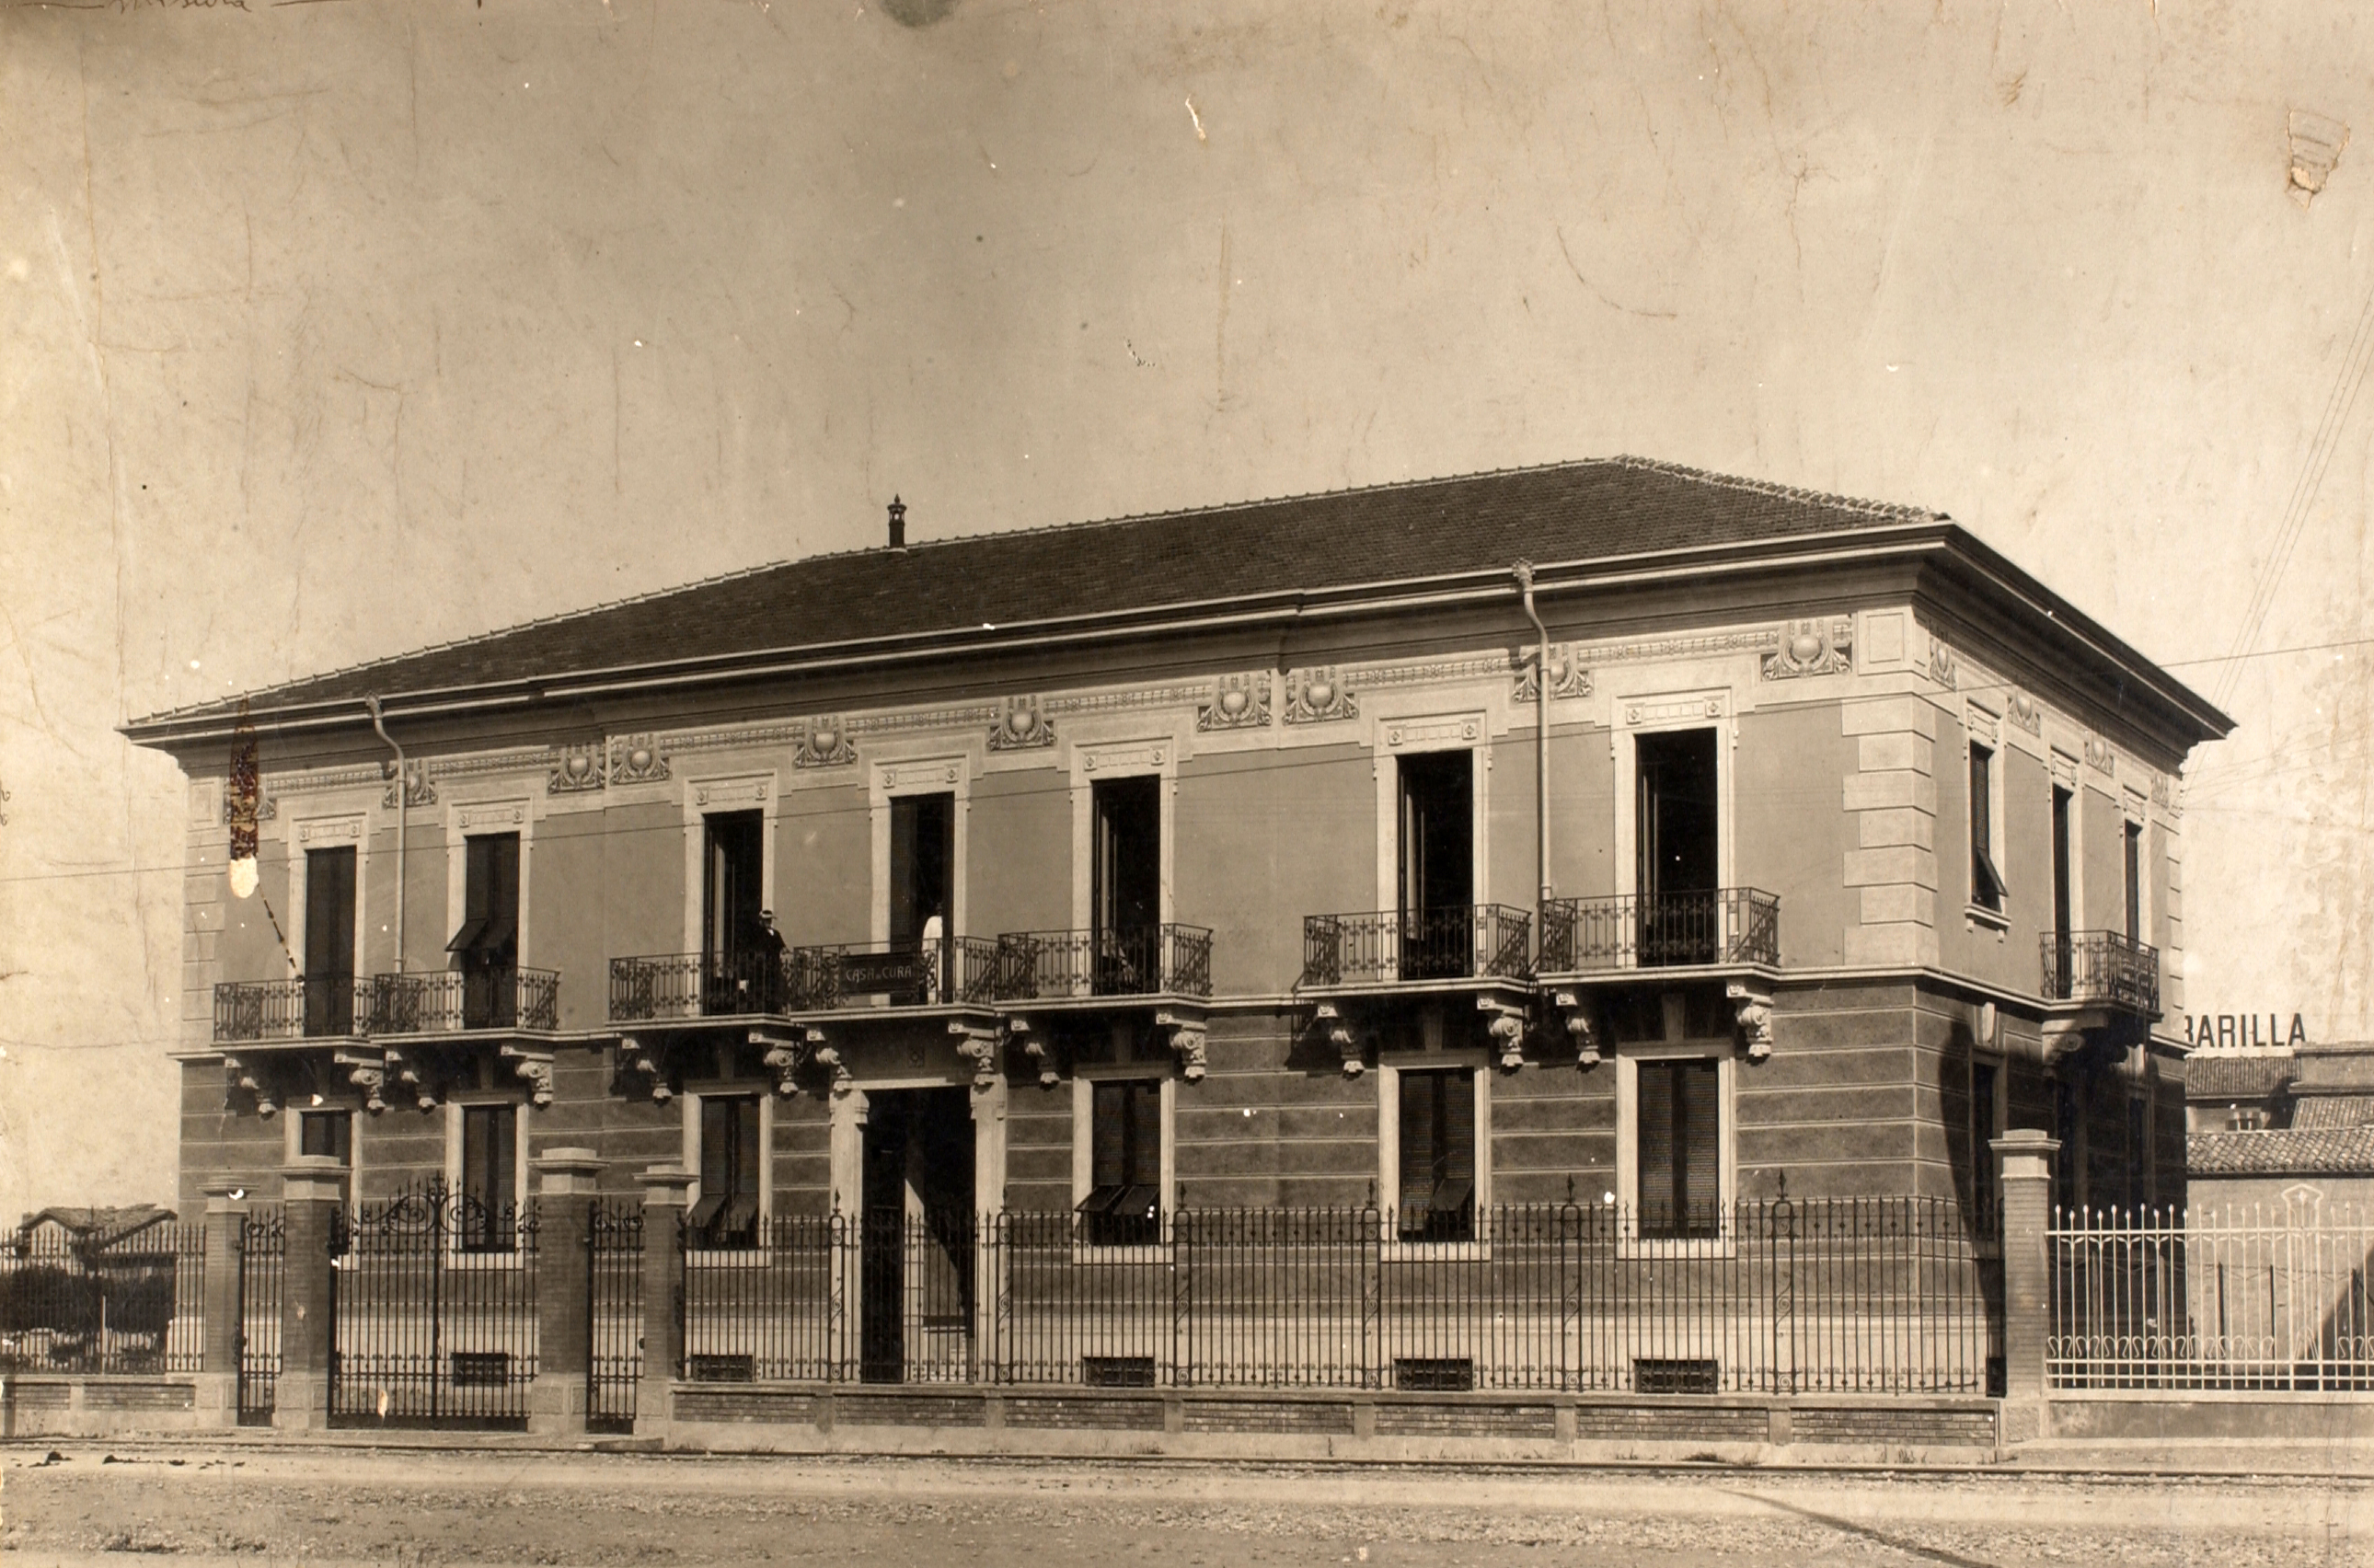 The transformations of the facade on Viale Veneto (today Viale Barilla) began with the expansion of the area that formed Manguidi and Vecchi Nursing Home here shown in a photo from the 1920s [ASB, Aa 576] and the construction of the building used for the